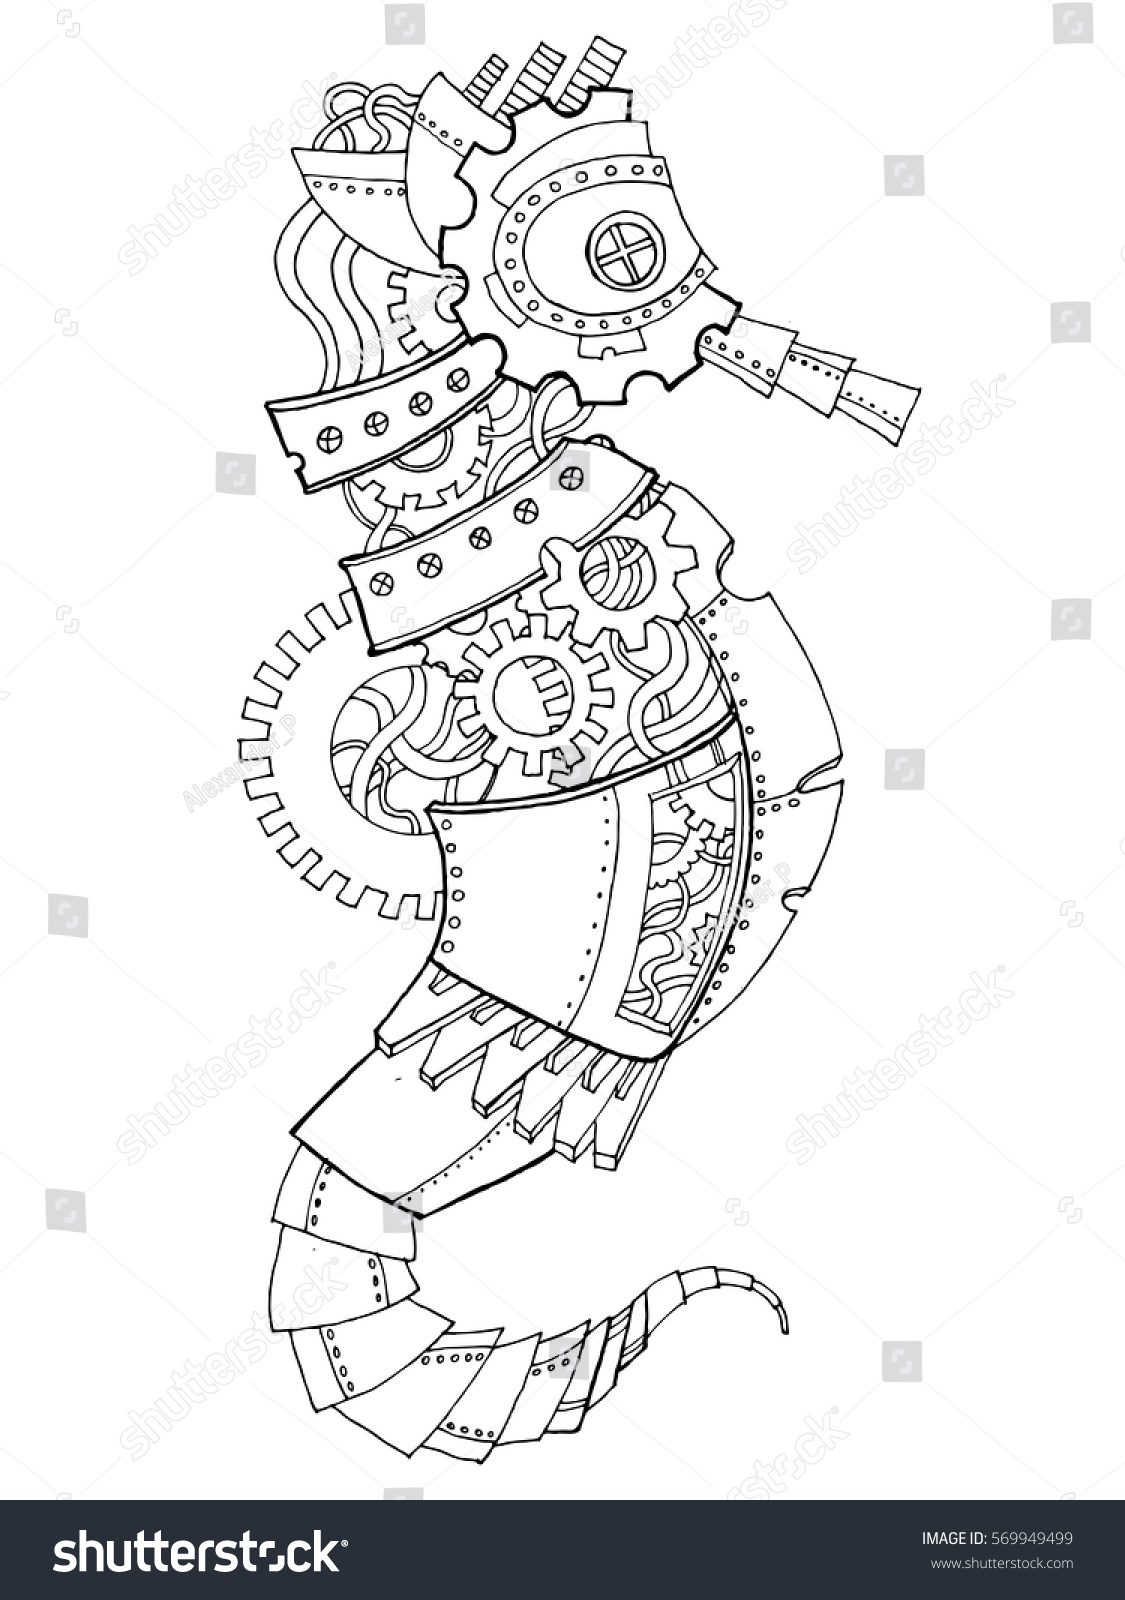 Steampunk Style Sea Horse Mechanical Animal Coloring Book Vector Illustration